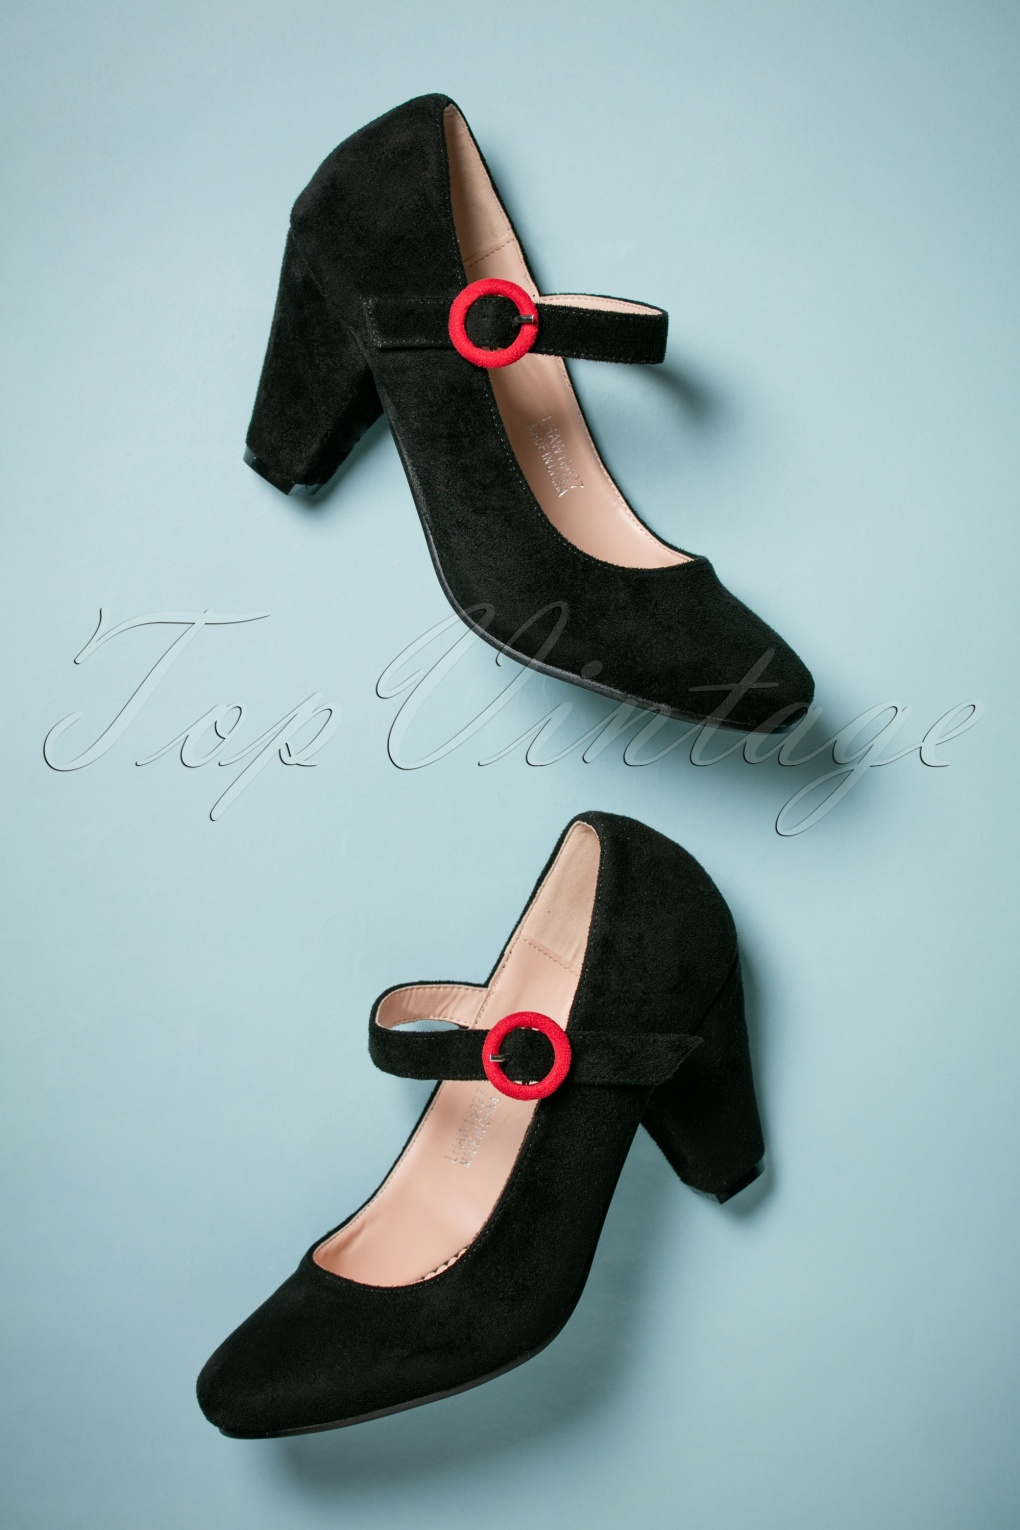 Vintage Style Shoes, Vintage Inspired Shoes 50s Marianne High Heel Pumps in Black £47.26 AT vintagedancer.com